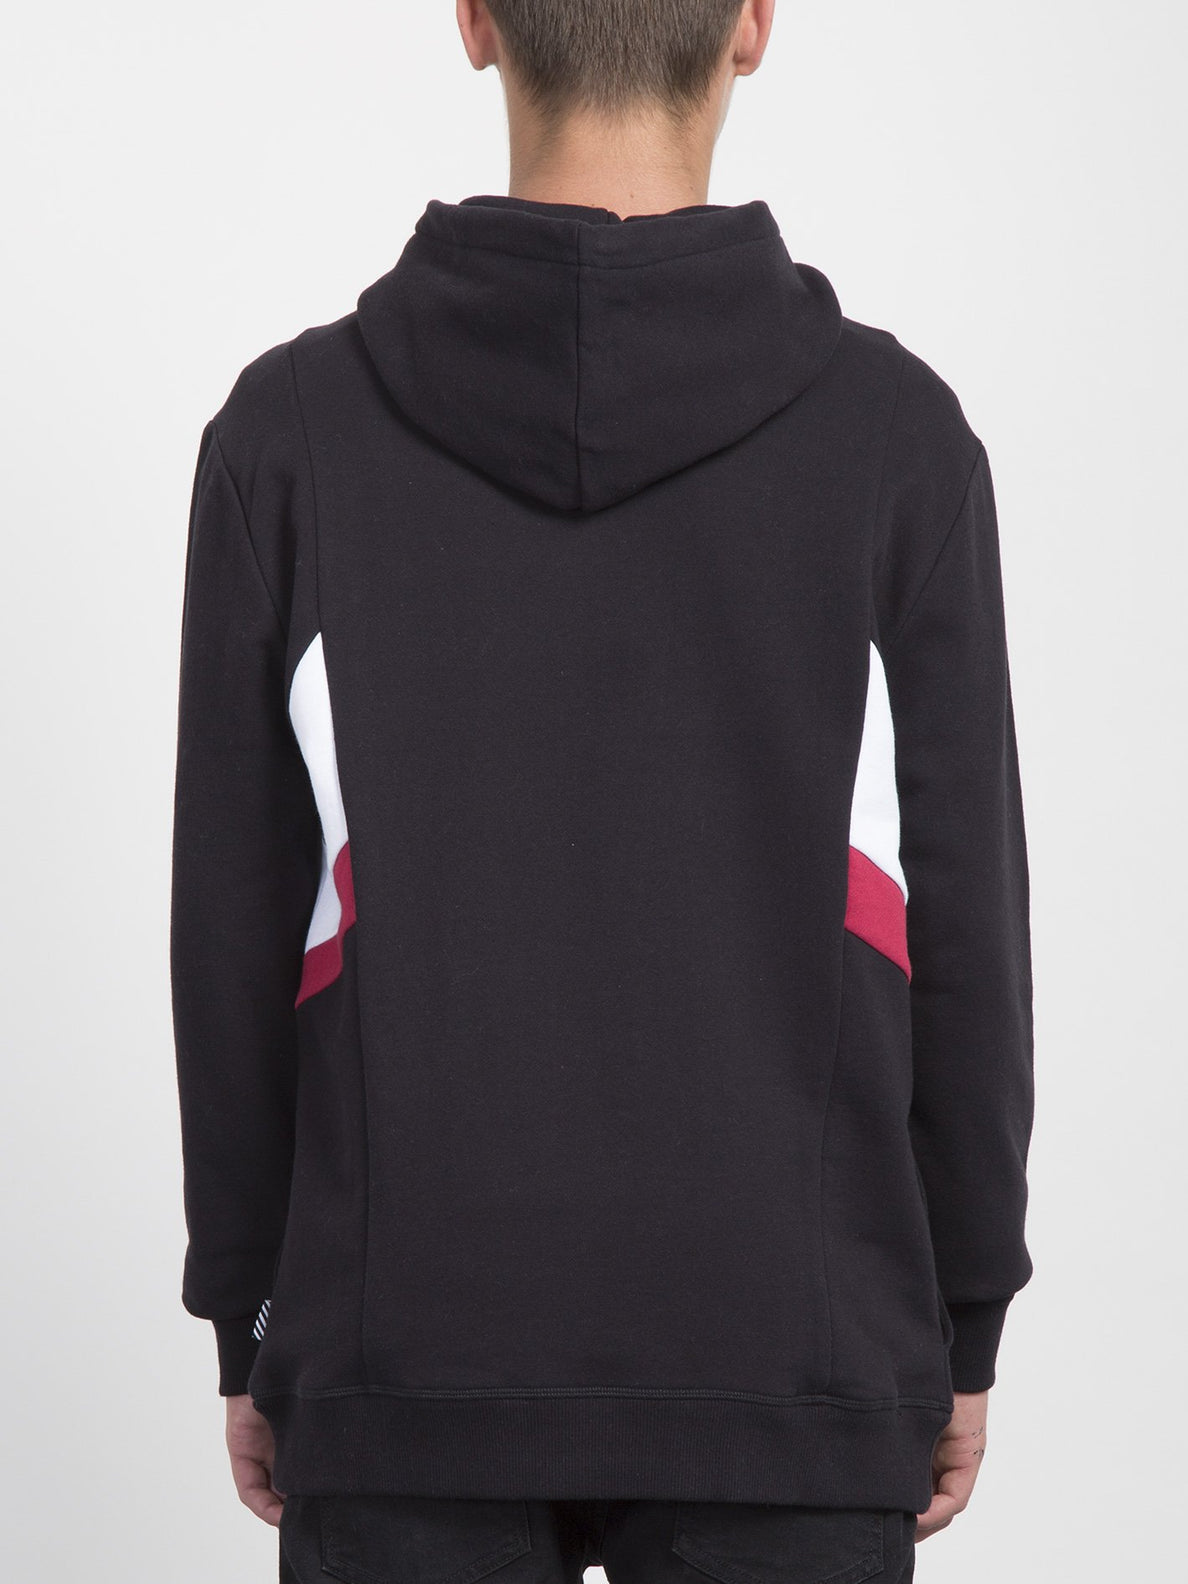 Wailes Pullover  - Black